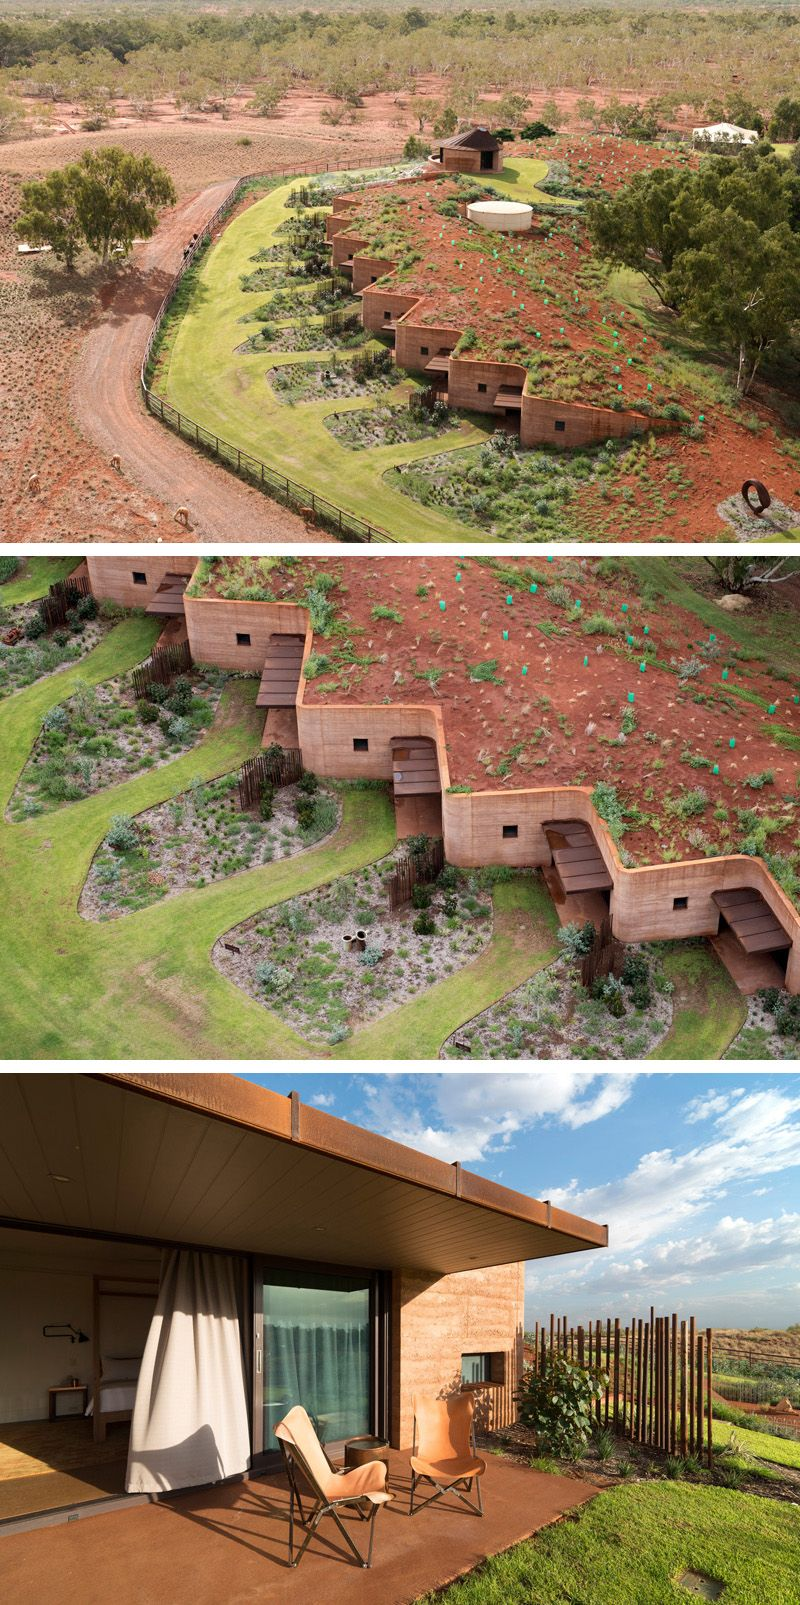 Rammed Earth House Underground Designs on construction house designs, cob house designs, mud house designs, permaculture house designs, eco-block house designs, earth sheltered house designs, adobe house designs, passive house designs, roof house designs, house house designs, cement house designs, green architecture house designs, hydraform house designs, ferrocement house designs, architectural house designs, masonry house designs, log house designs, adobe style homes designs, shipping containers house designs,